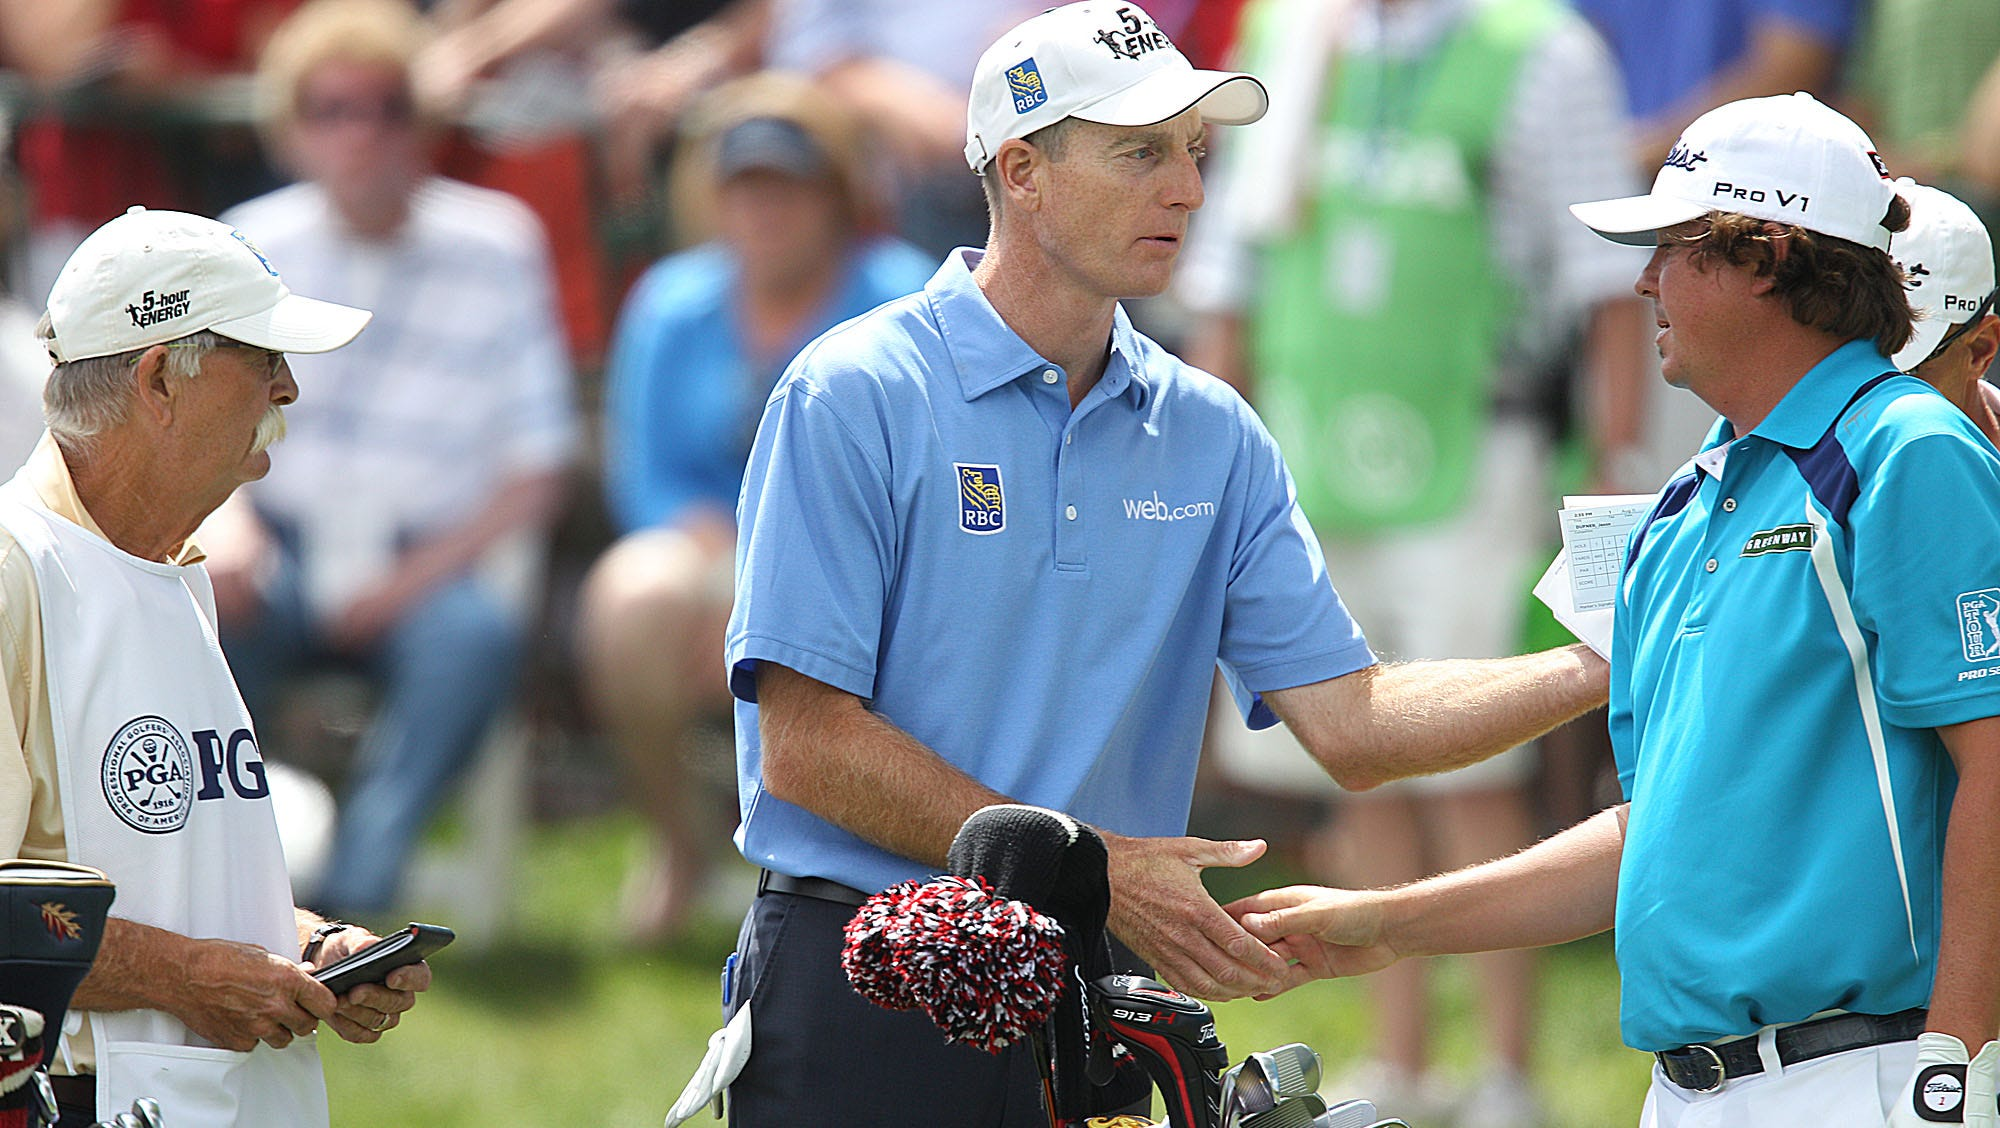 Jim Furyk and Jason Dufner shake hands before teeing off on the first hole at Oak Hill Sunday.